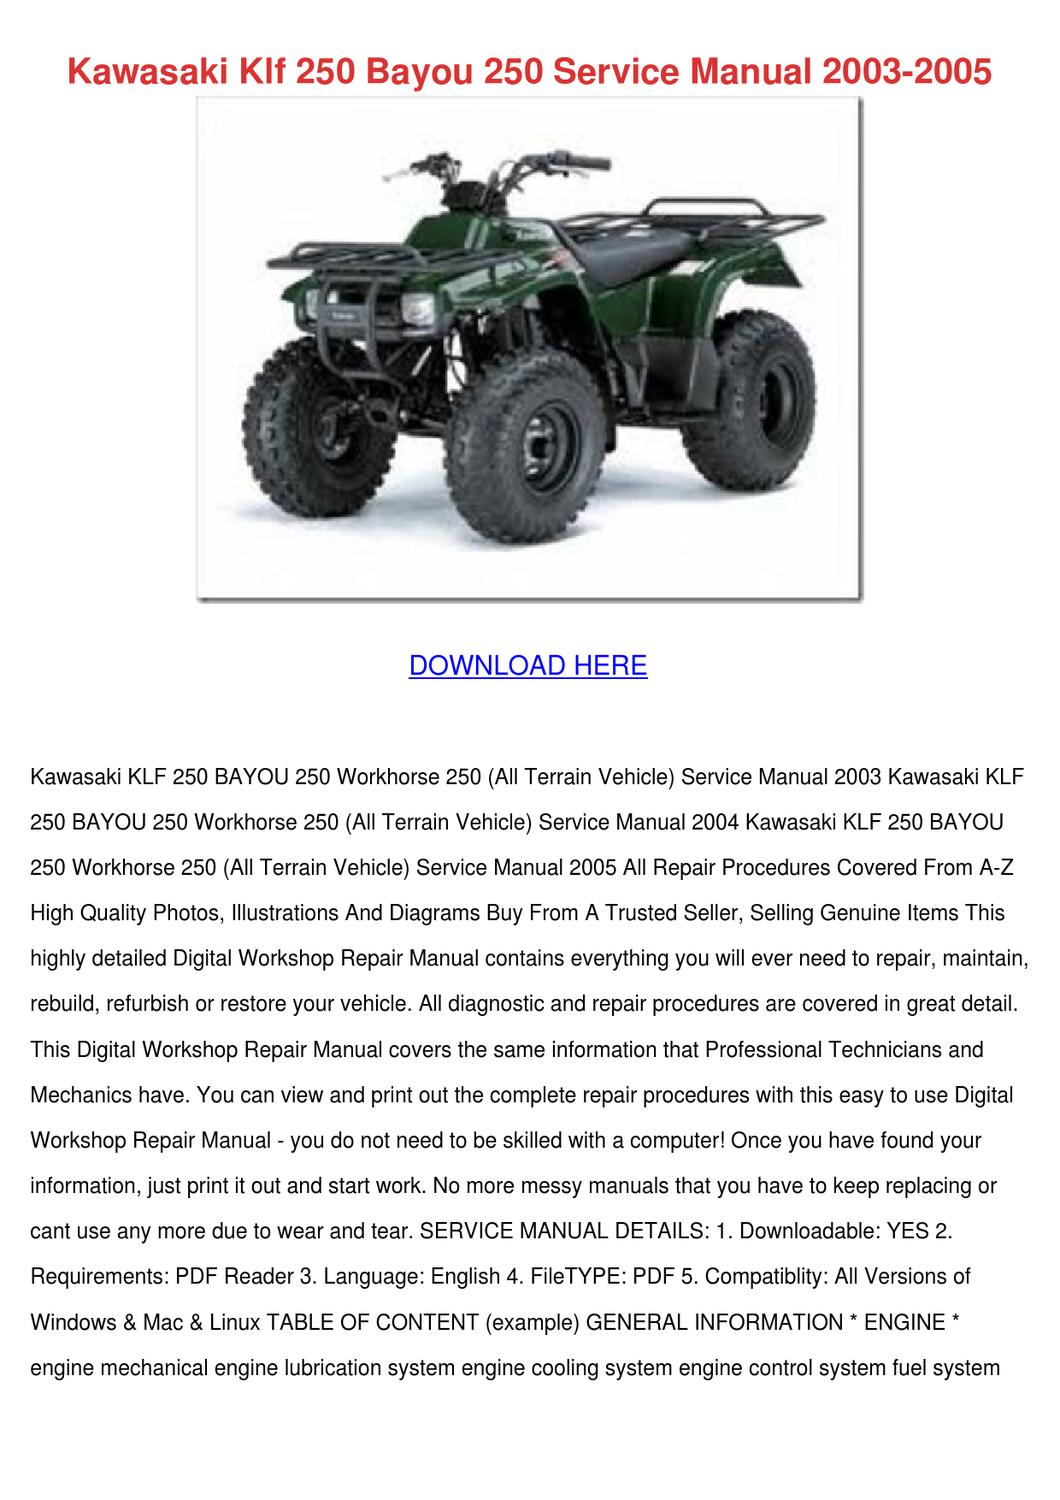 Kawasaki Klf 250 Bayou Service Manual 200 By Raven Ideue Issuu Klr Wiring Diagram Free Download